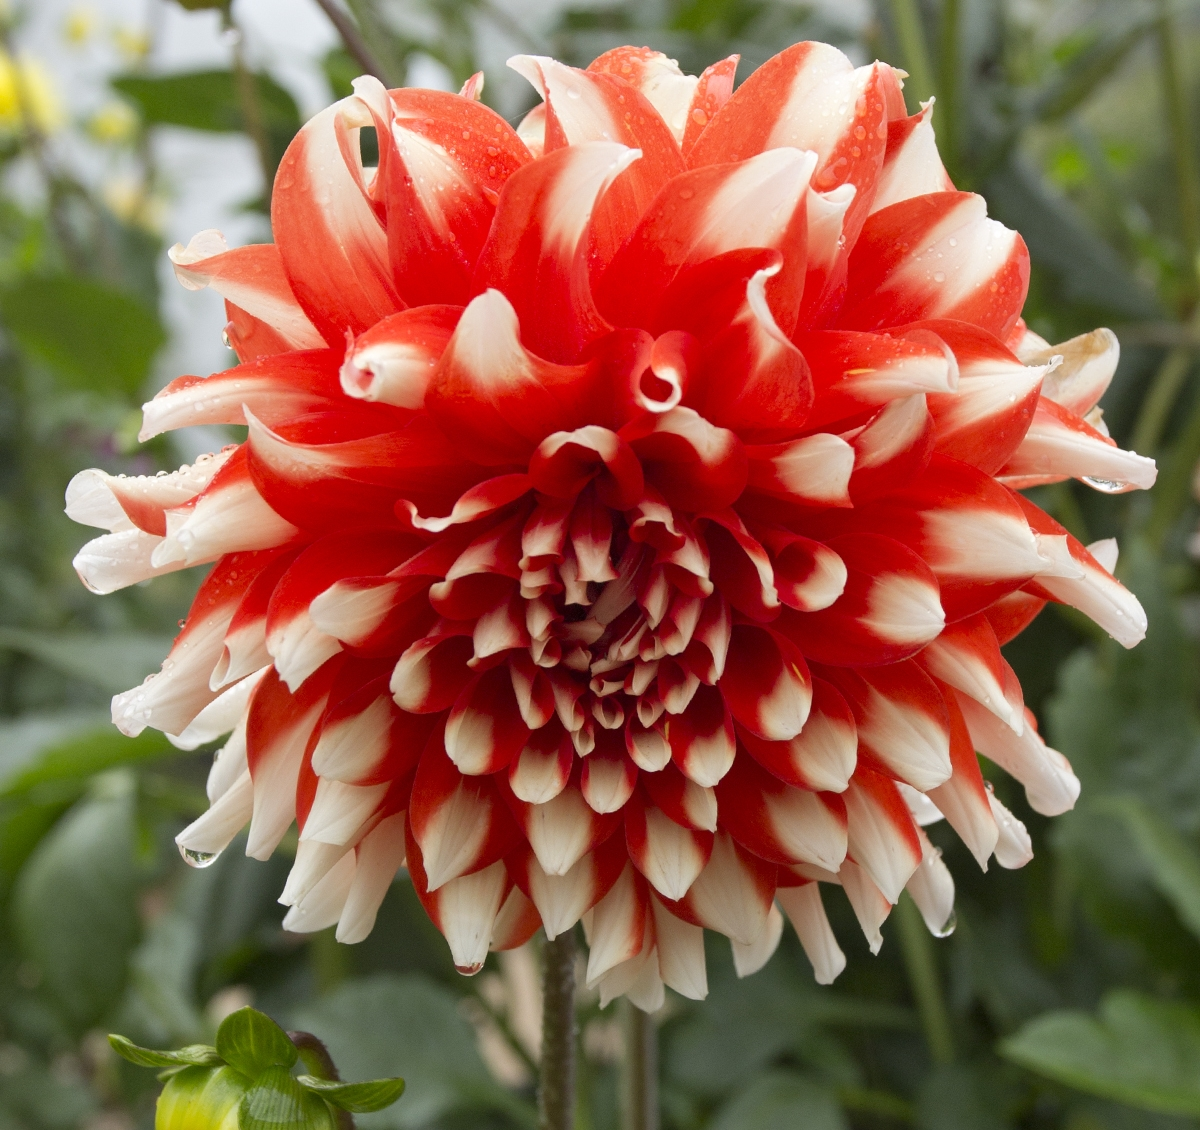 2015_03_31 Blue Mountains Botanic Garden Mount Tomah Dahlia cv Thommo white with red base miniature decorative asteracea